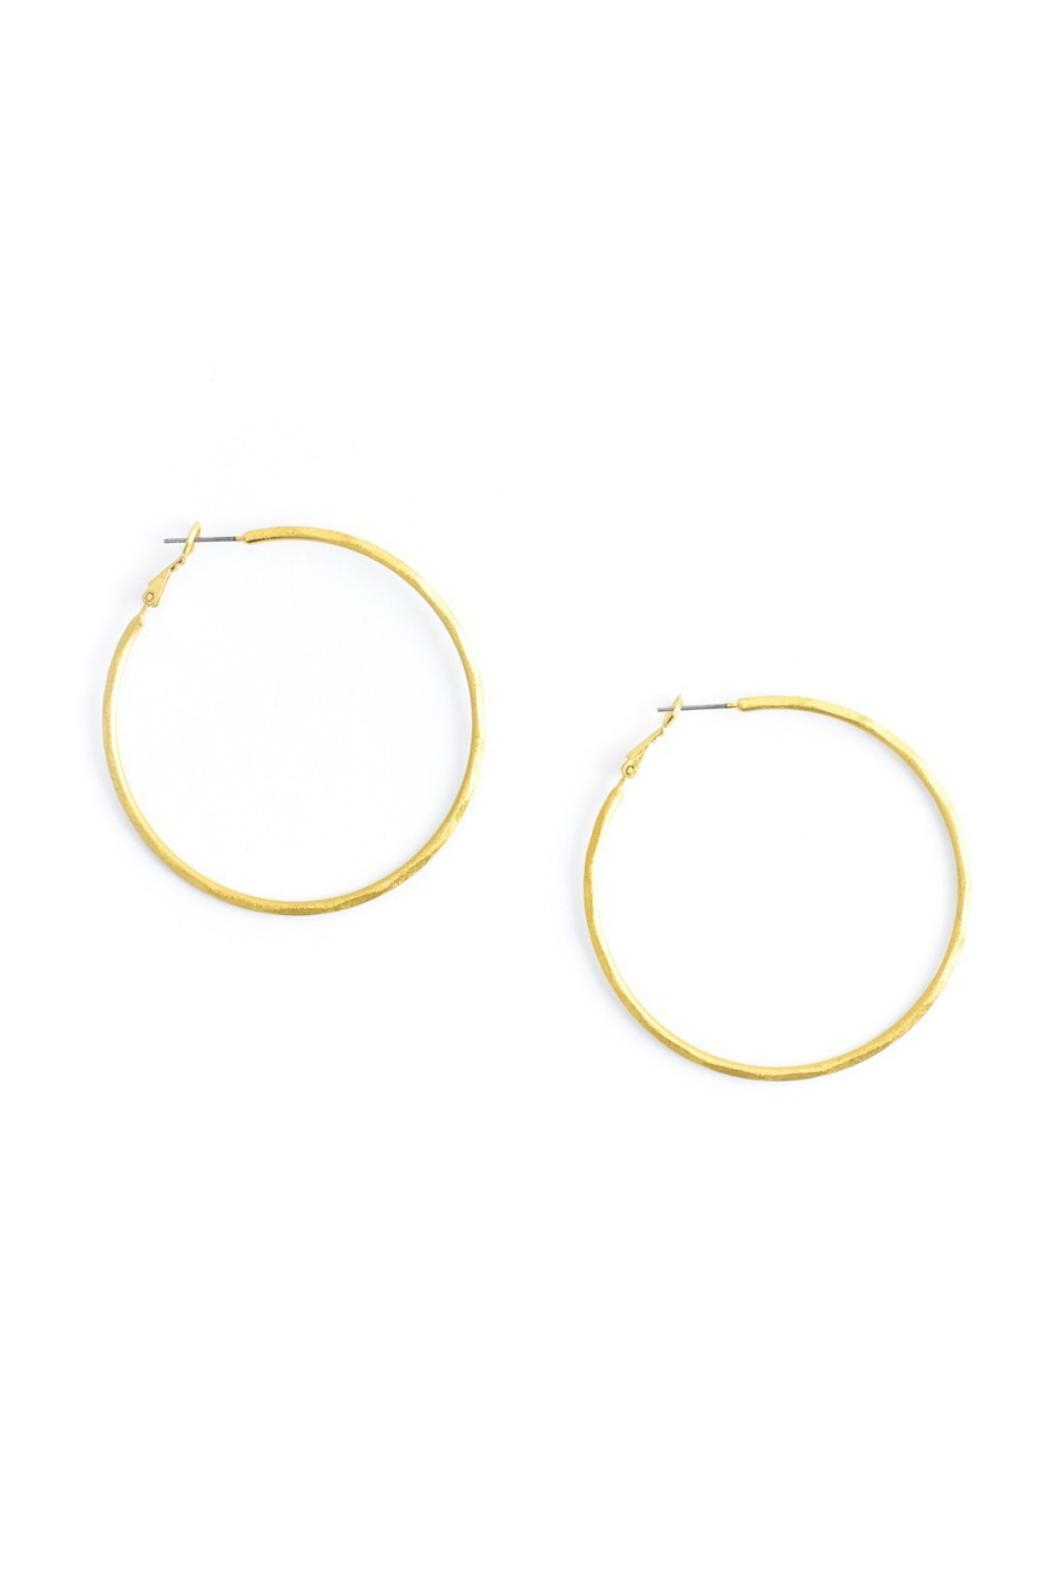 Gemma Collection Gold Hammered Hoop Earrings - Main Image